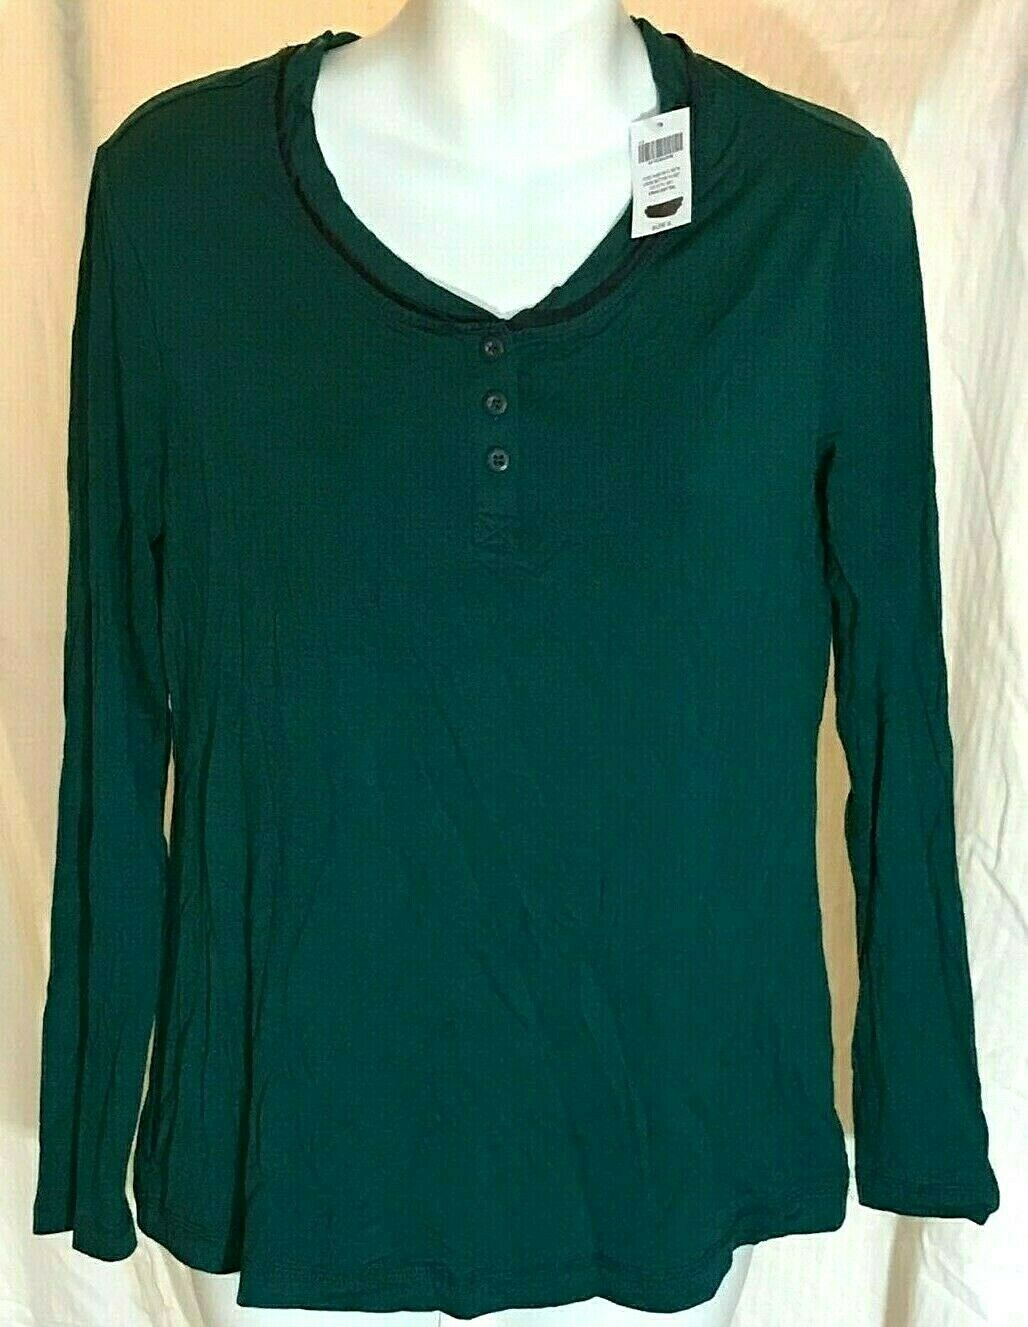 Soma Cool Nights Pajama Long Sleeve Crew 2 Button Top Women's Small - Deep Teal